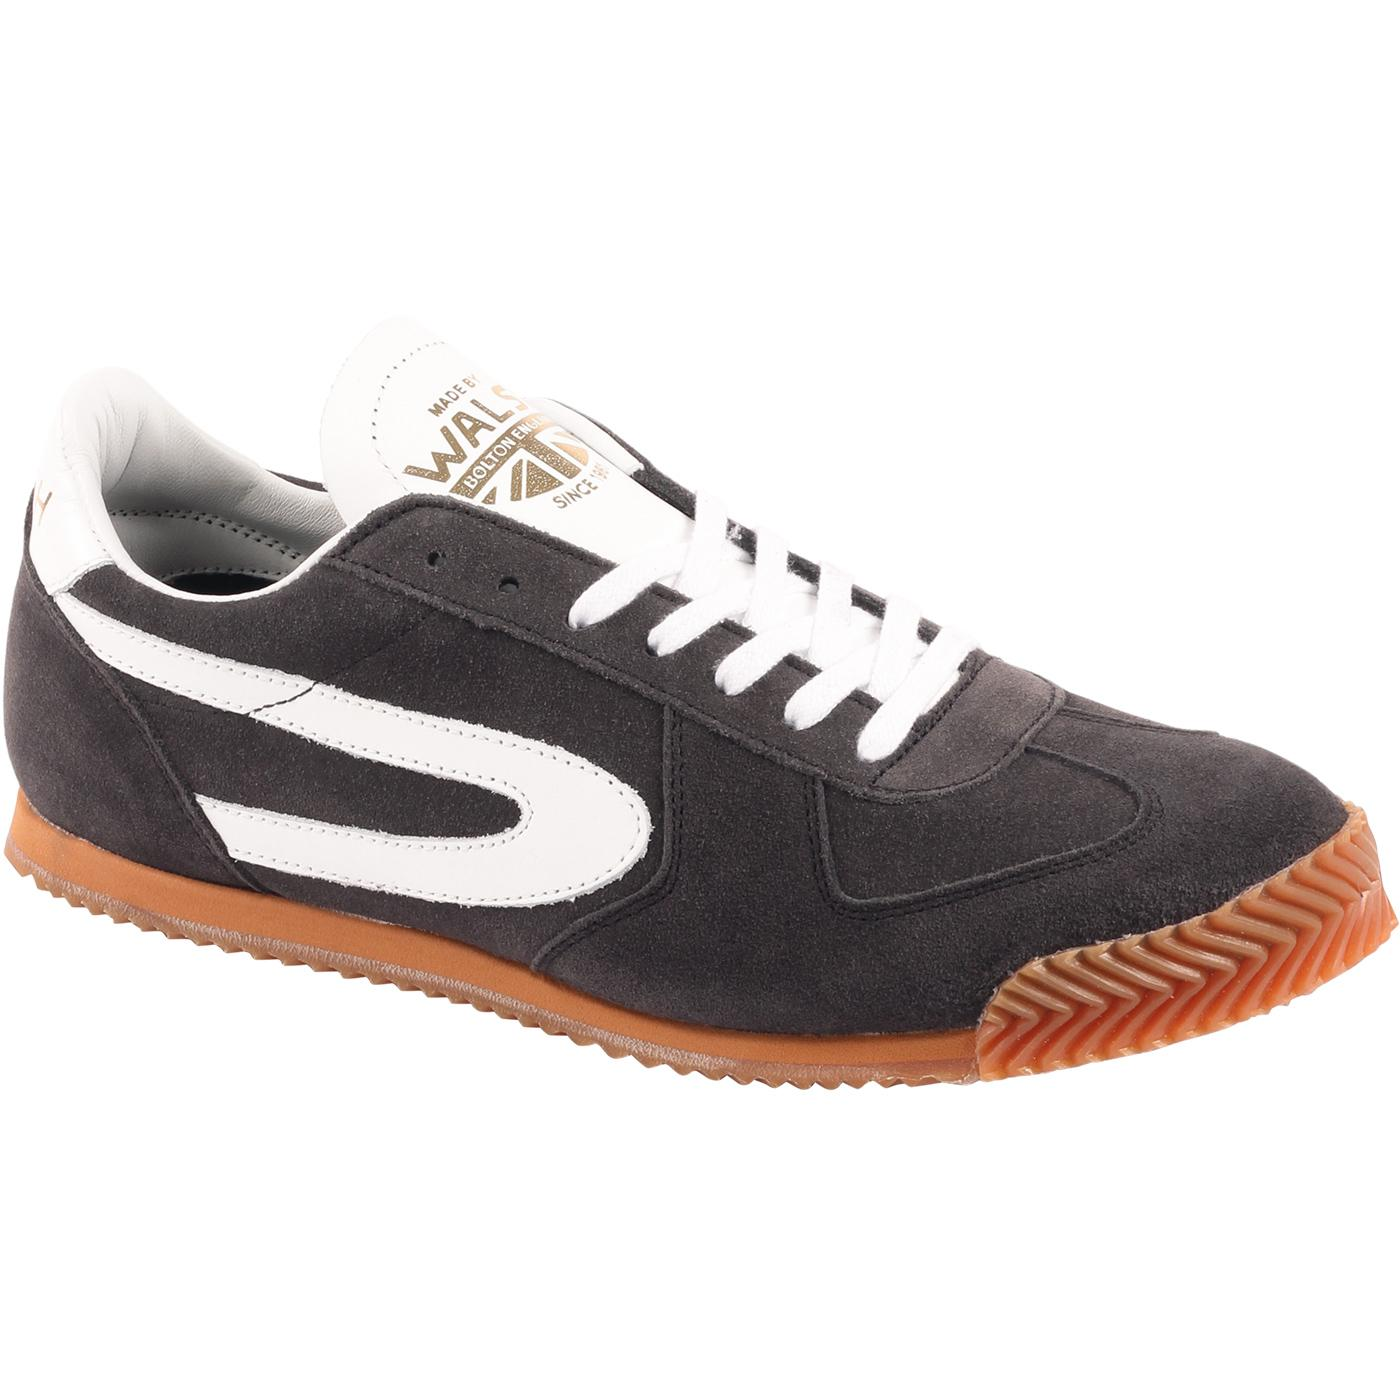 Tokyo 20 WALSH Retro 1970s Sports Trainers In Grey